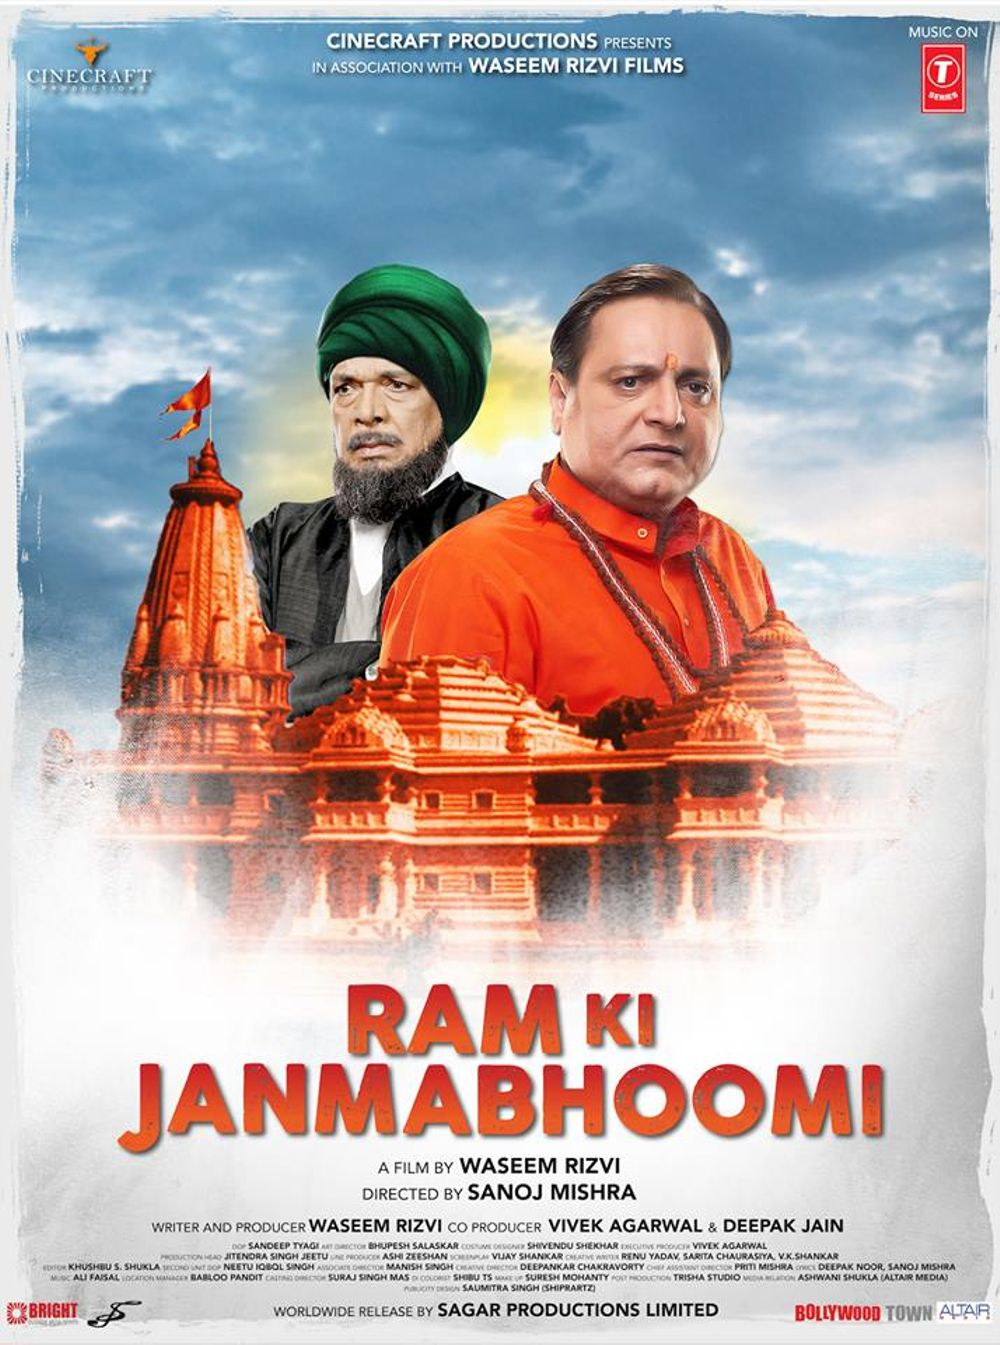 Ram Ki Janmabhoomi Movie Review